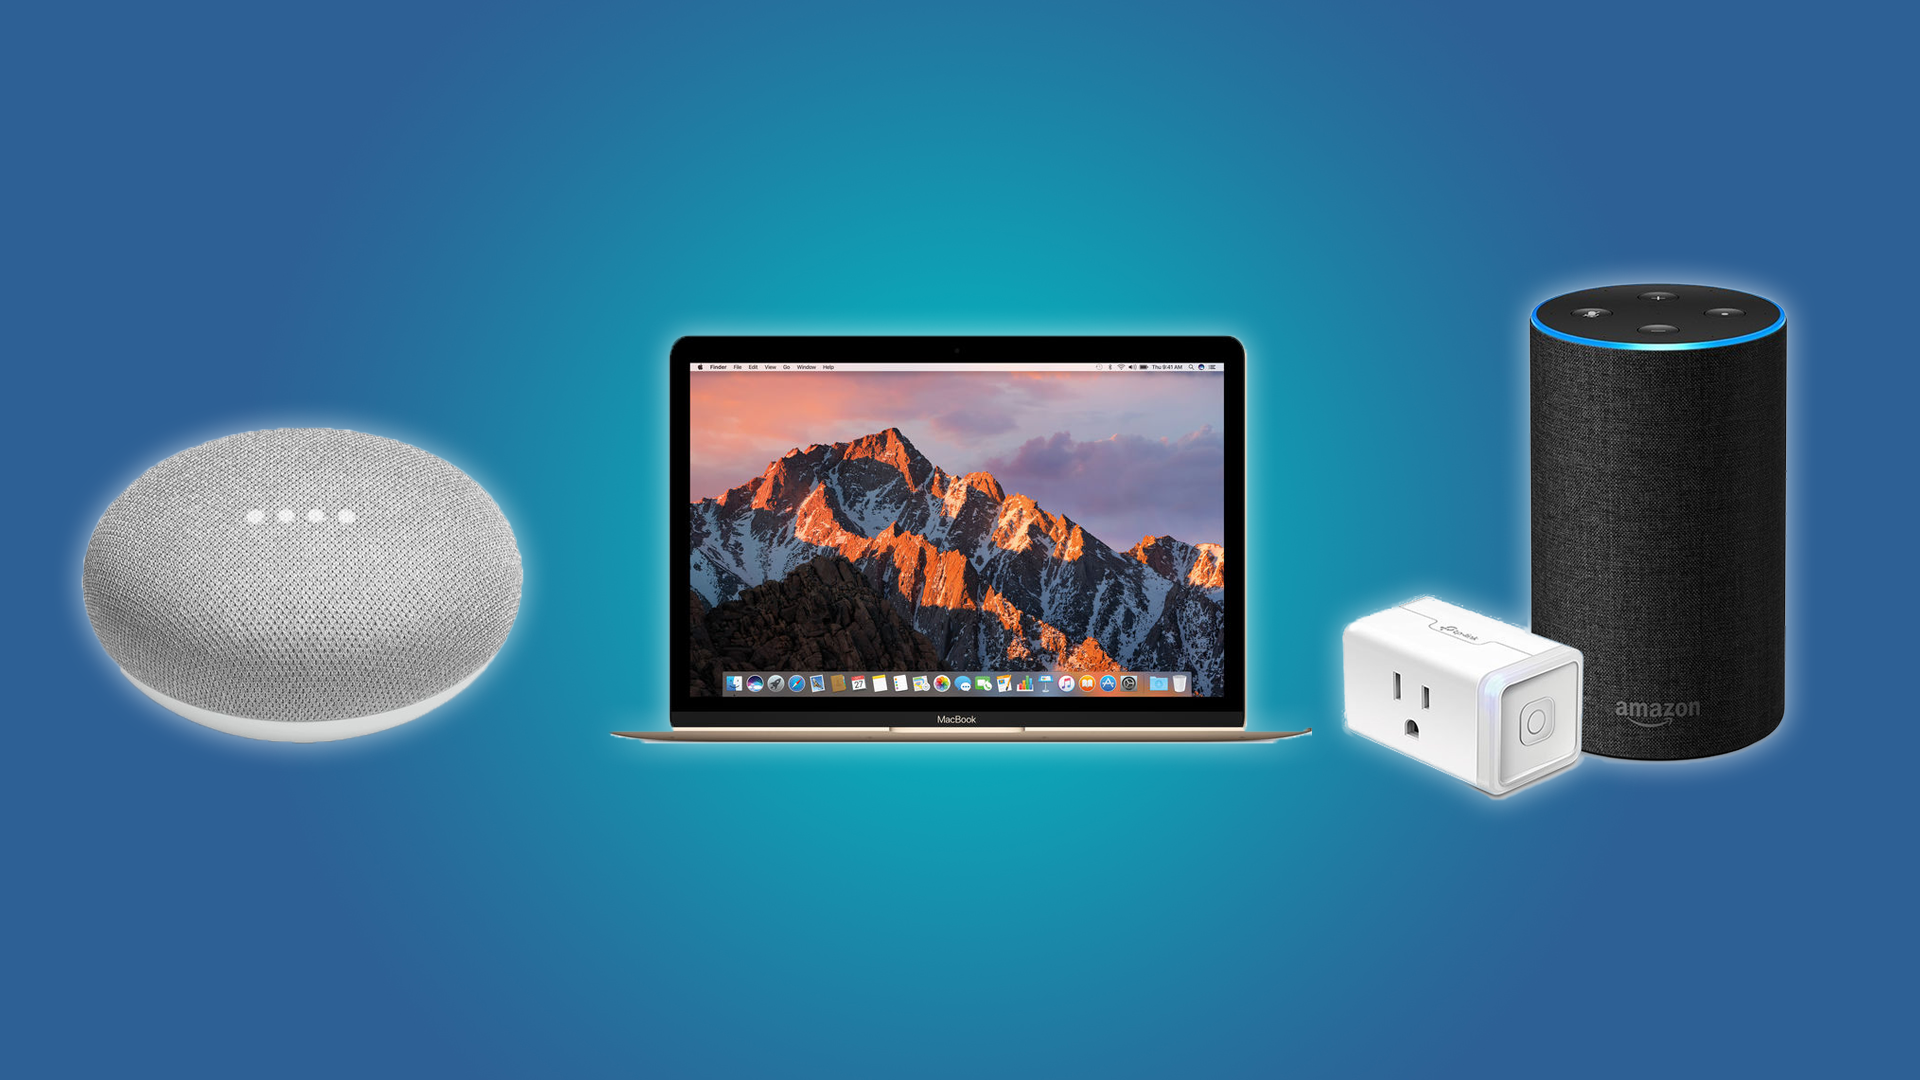 The Google Home Mini, the Macbook, and the Echo with a TP-Link Smart Plug